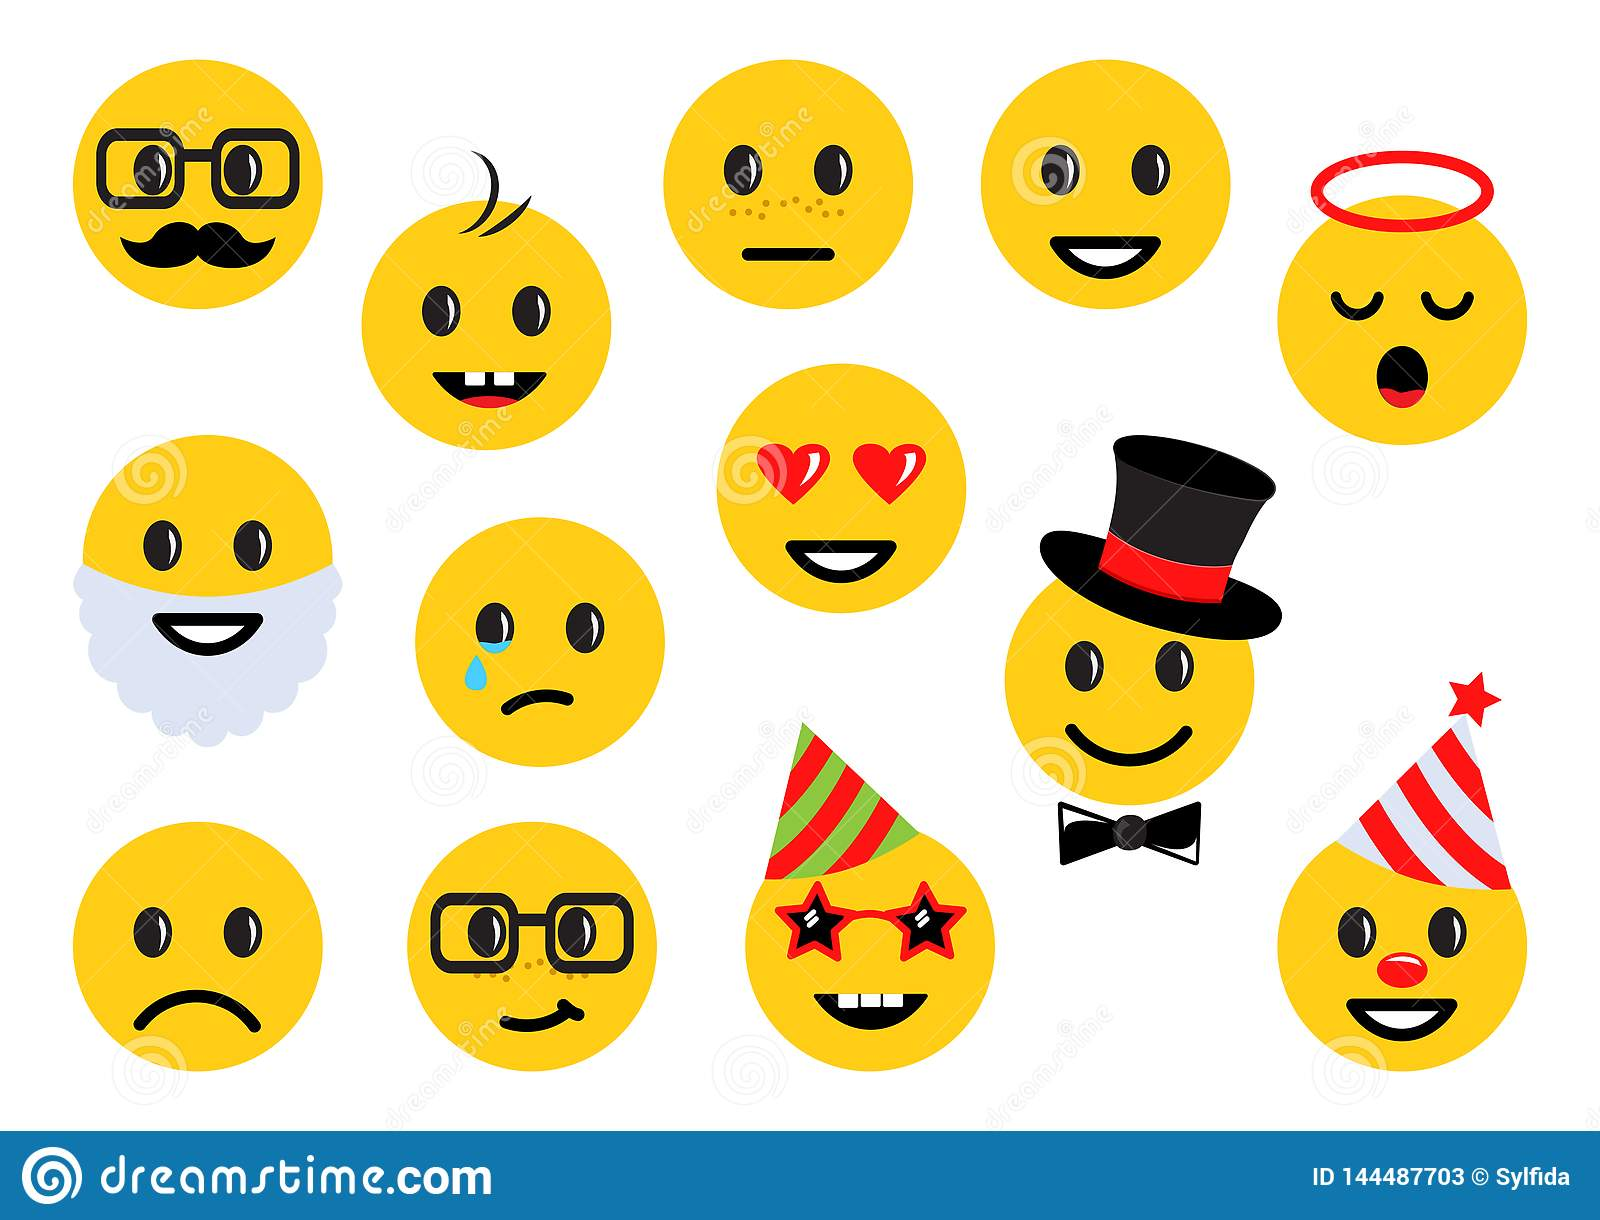 Yellow smileys, set of different emoticon icons. Vector